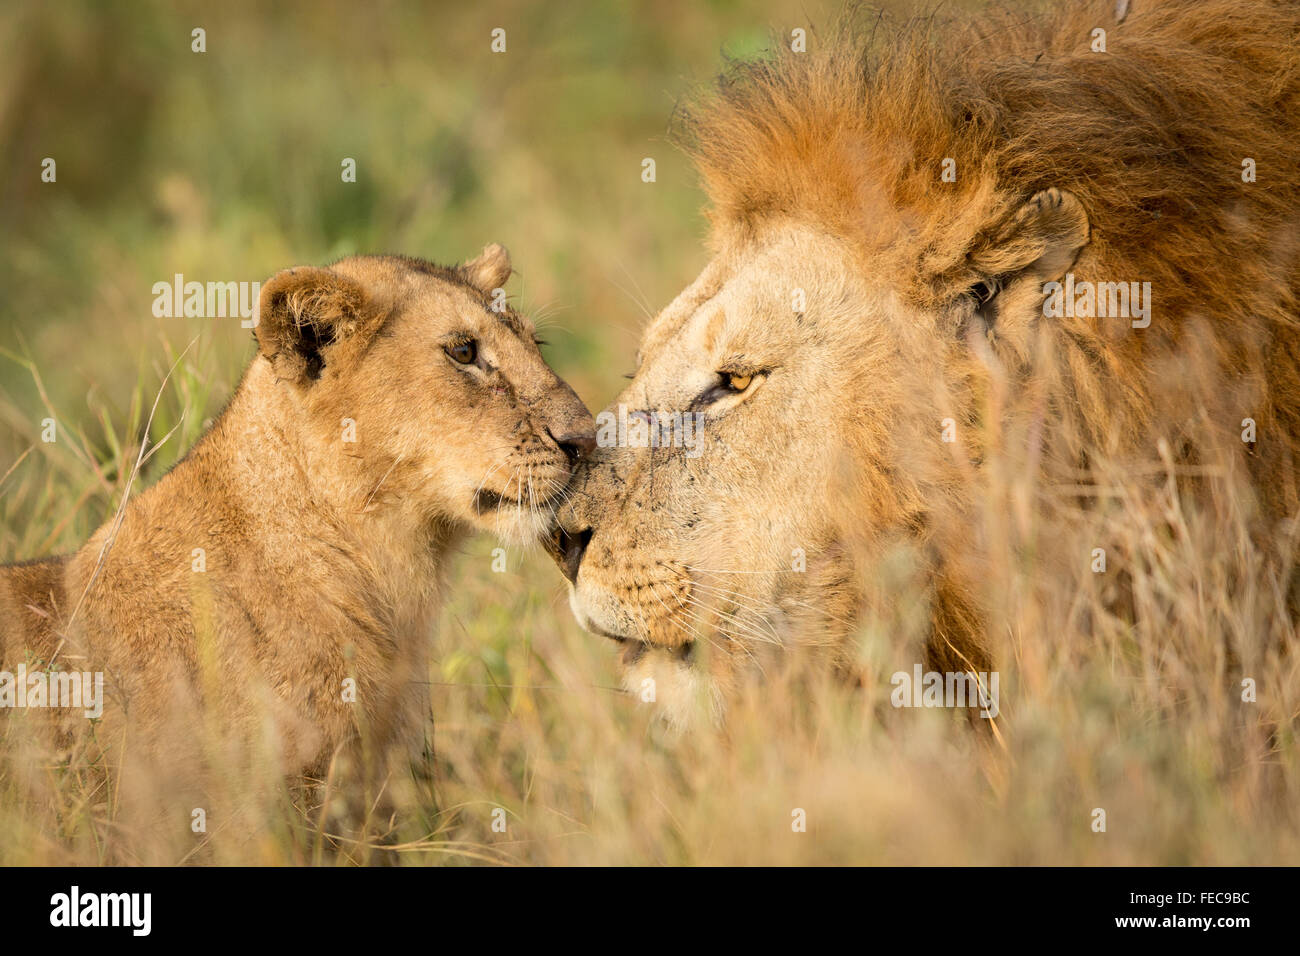 Adult Male African Lion and young cub in the Serengeti National Park Tanzania Stock Photo